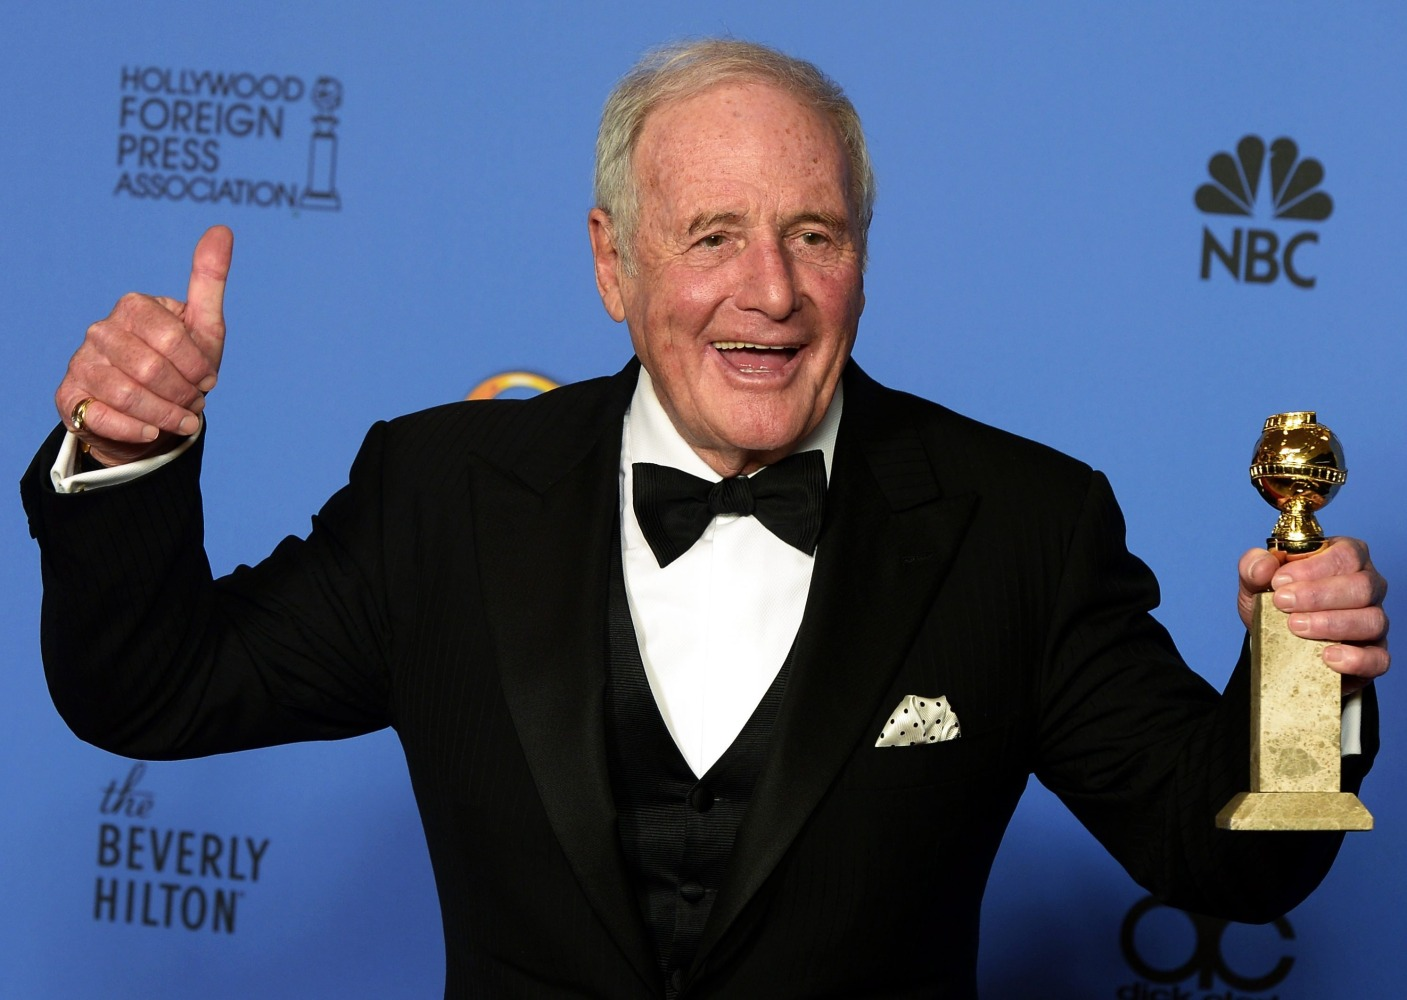 jerry weintraub bookjerry weintraub book, jerry weintraub productions, jerry weintraub book pdf, jerry weintraub imdb, jerry weintraub, jerry weintraub net worth, jerry weintraub wiki, jerry weintraub his way, jerry weintraub when i stop talking, jerry weintraub wikipedia, jerry weintraub death, jerry weintraub house, jerry weintraub documentary, jerry weintraub memorial, jerry weintraub susan ekins, jerry weintraub quotes, jerry weintraub obituary, jerry weintraub john denver, jerry weintraub died, jerry weintraub net worth forbes